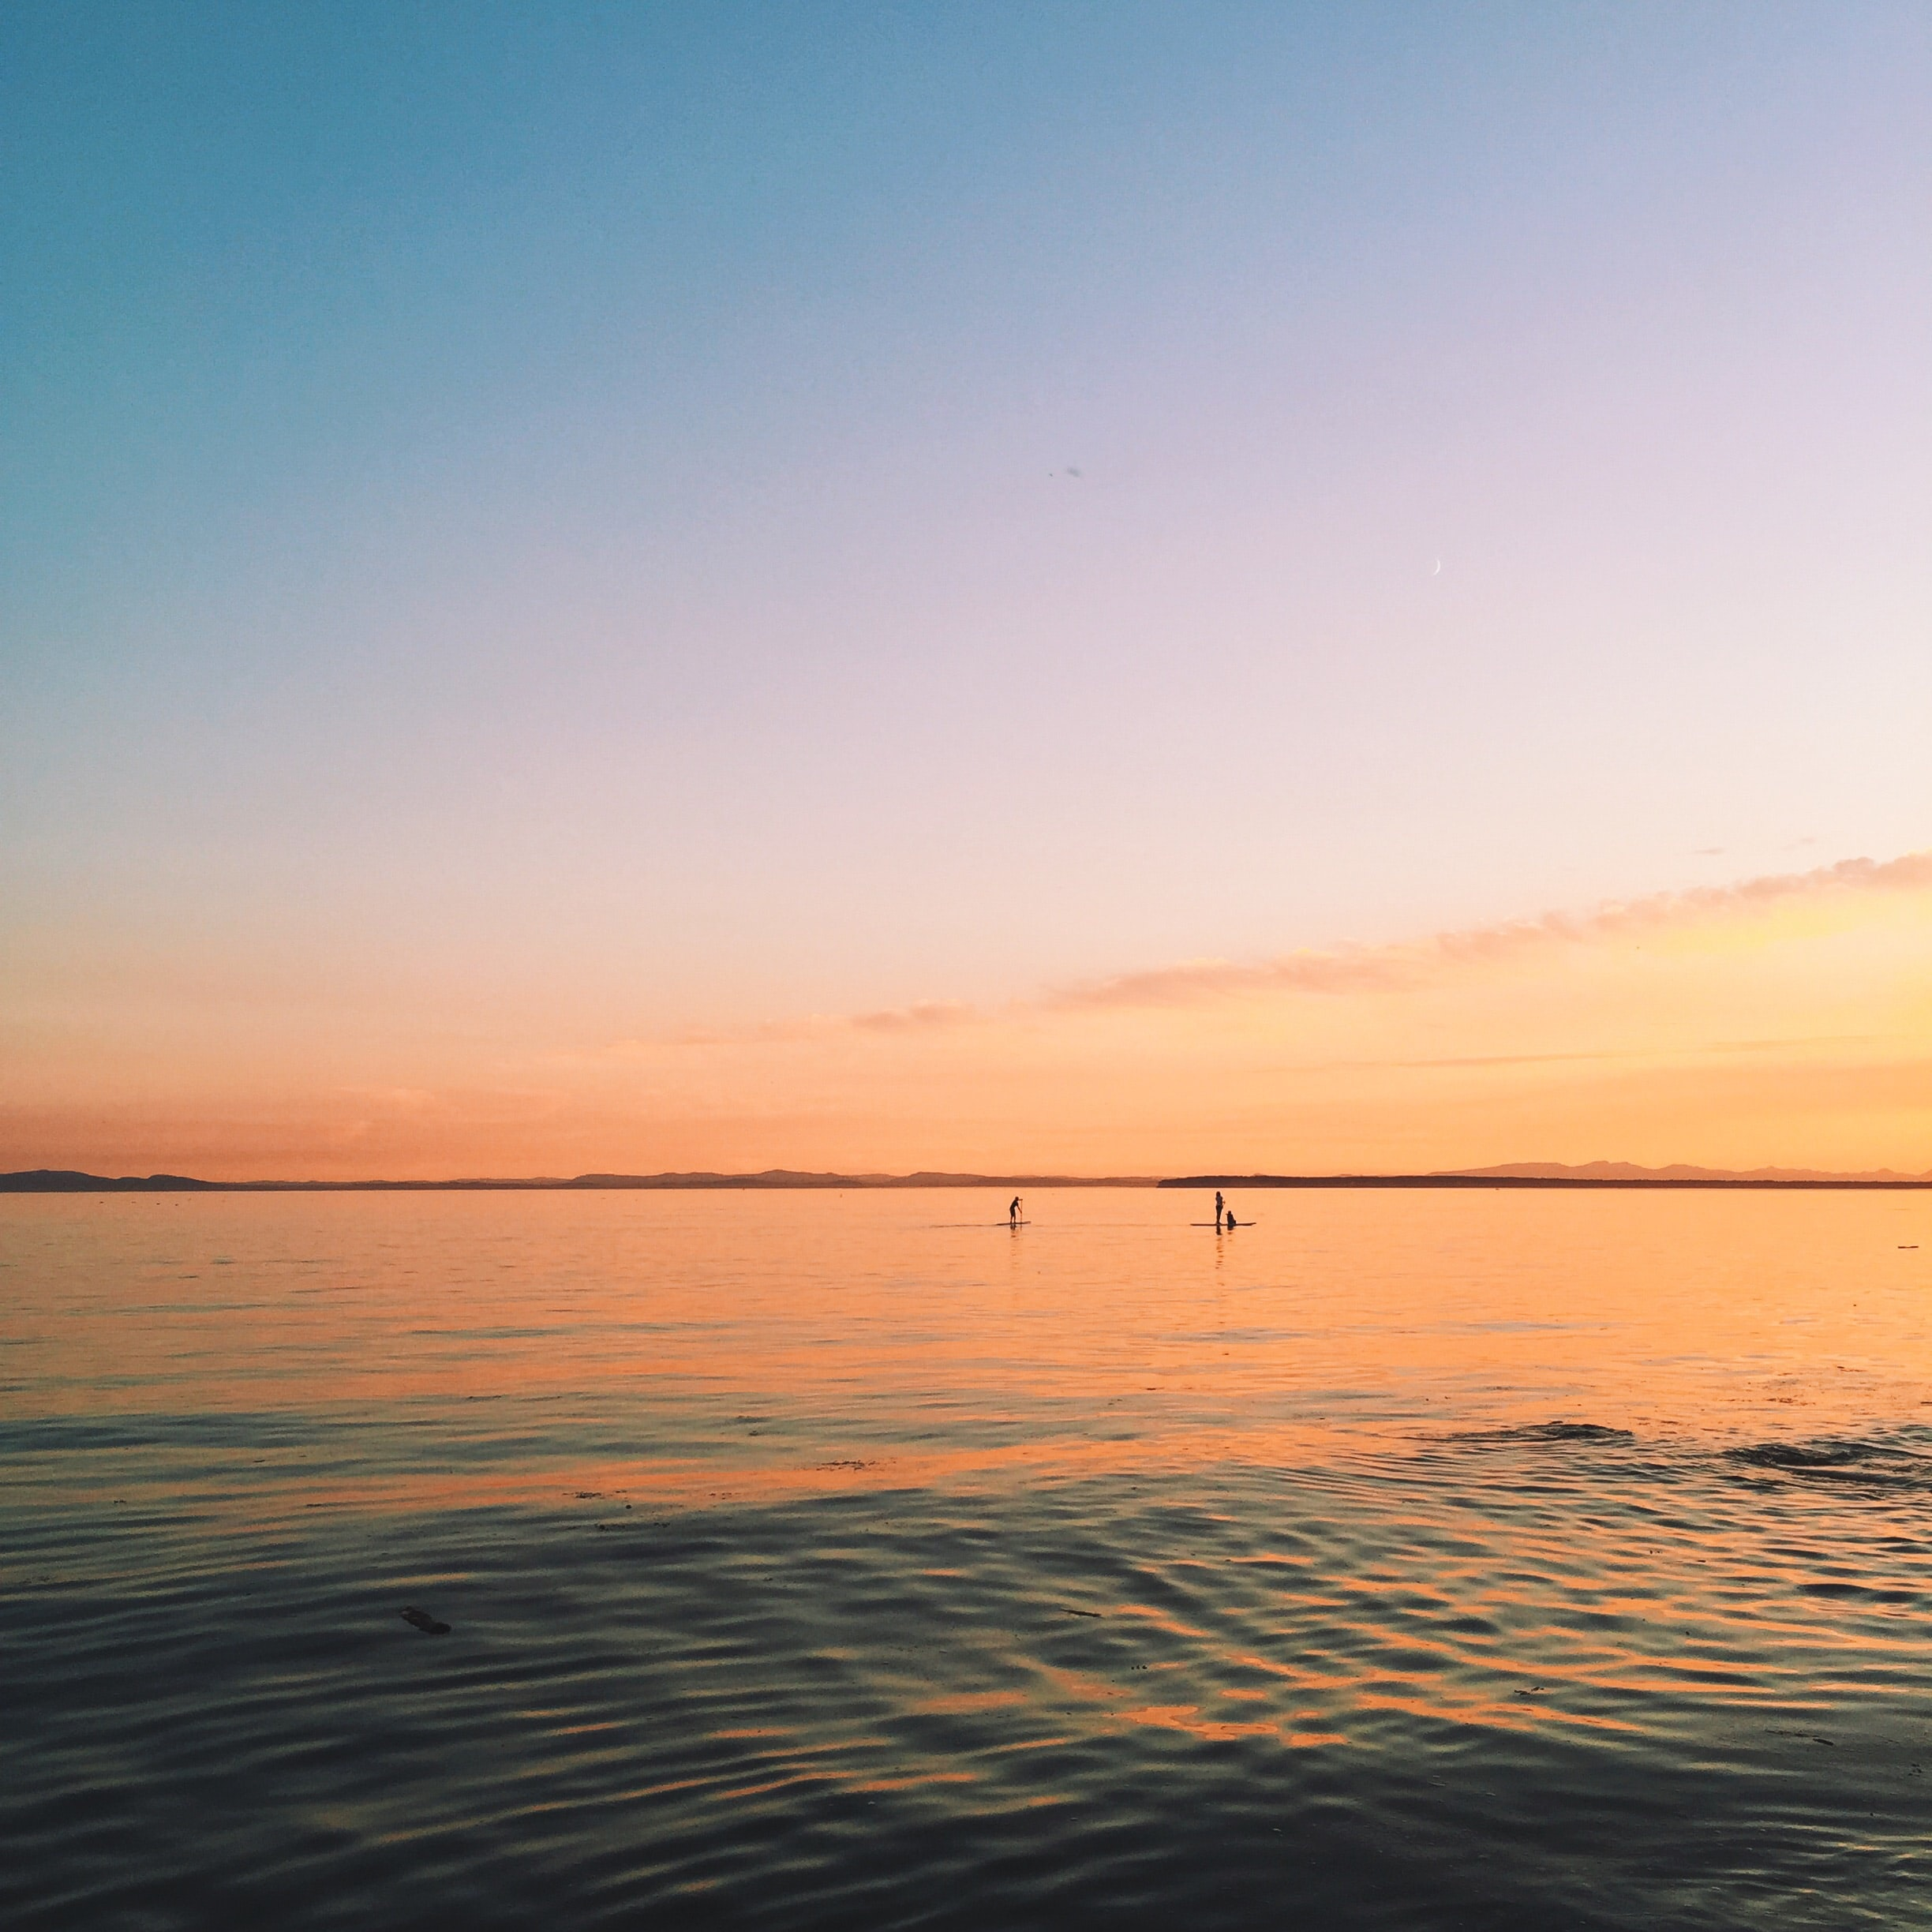 Silhouette of people rafting on calm waters during sunset